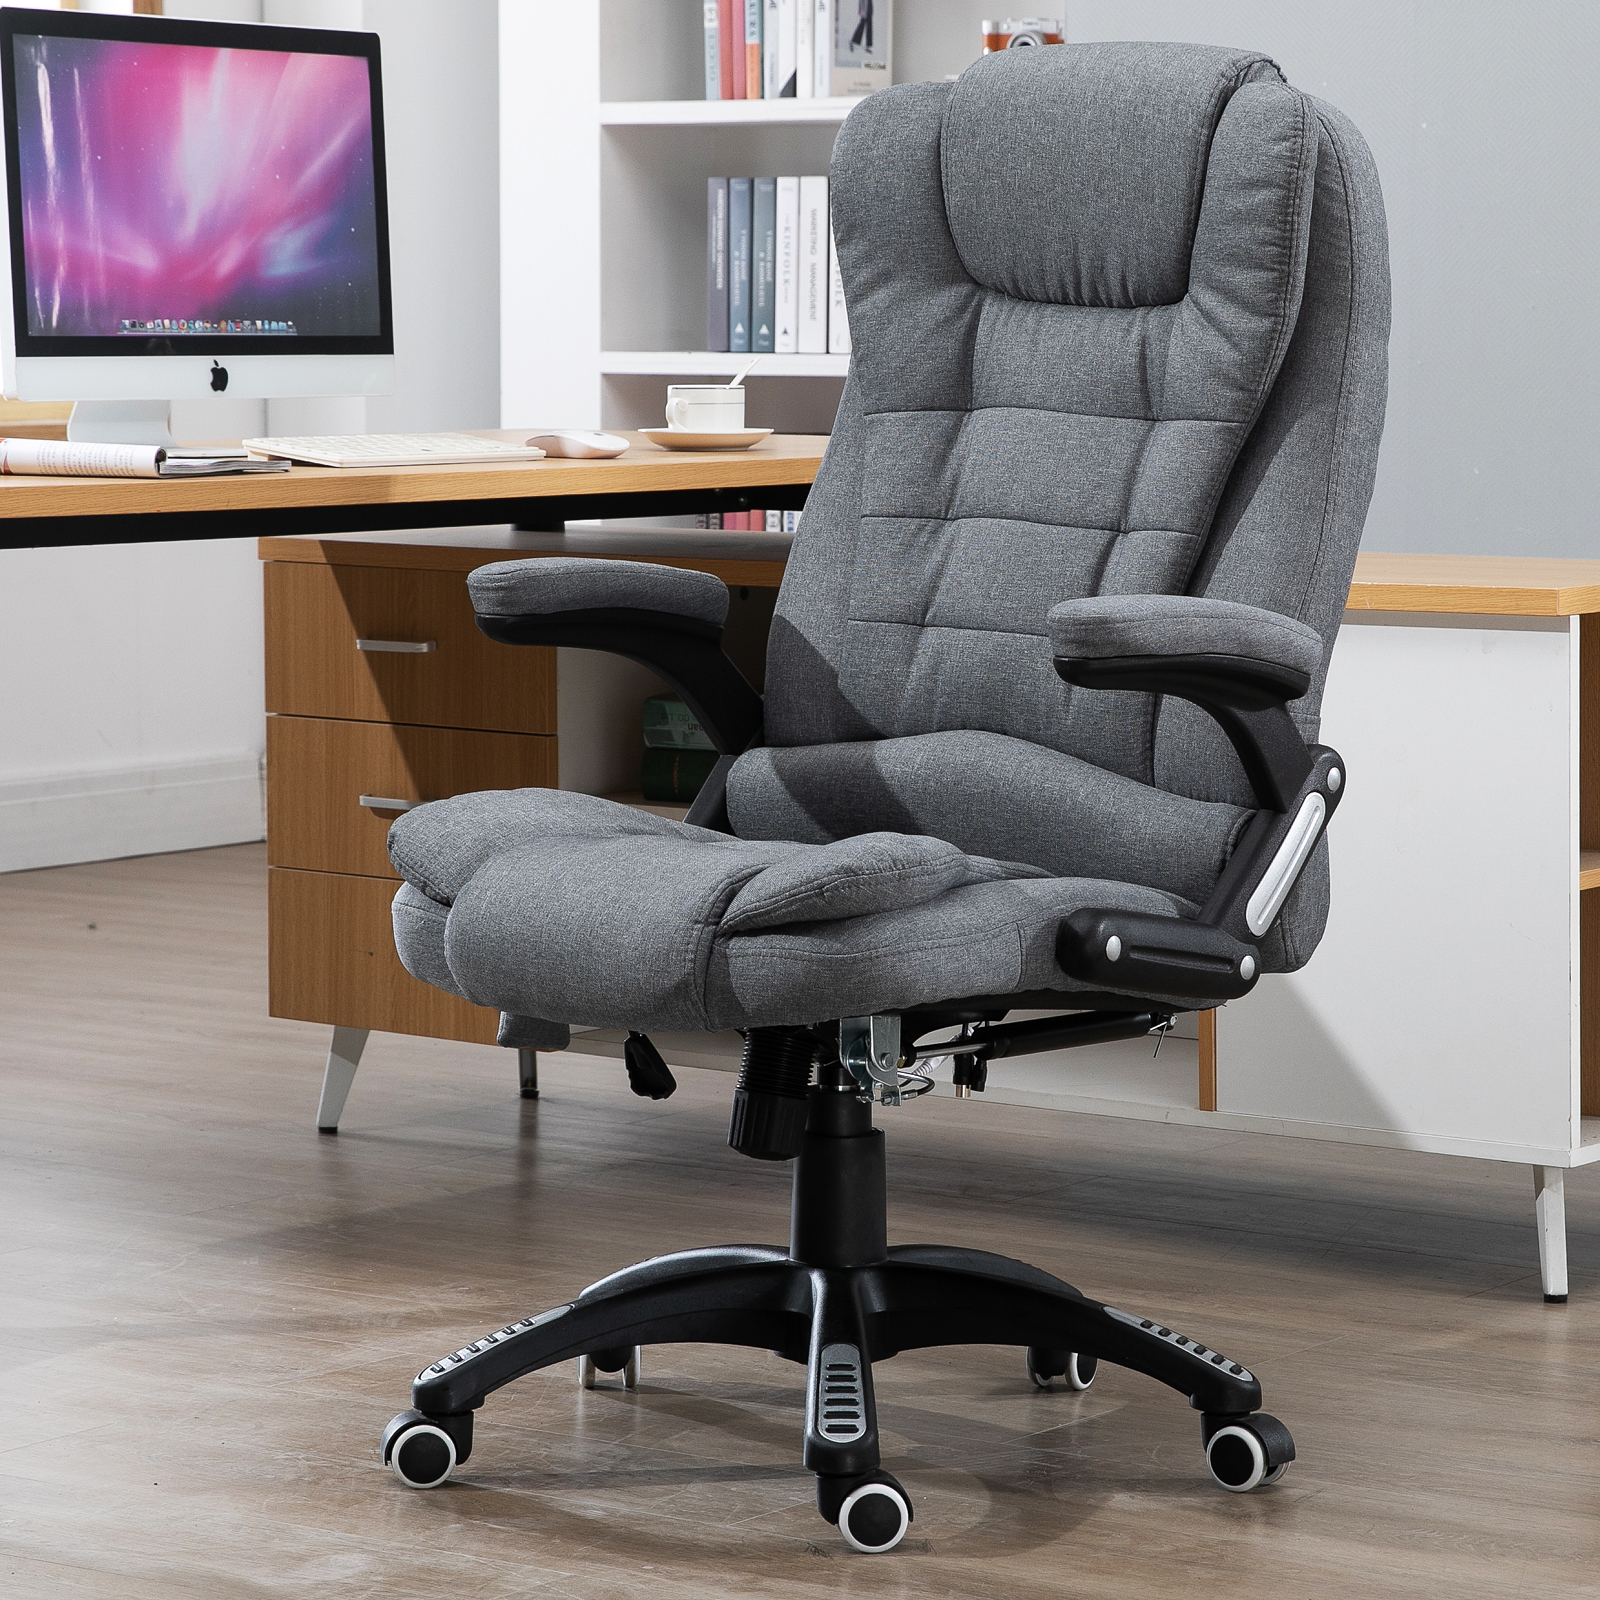 Details about Massaging Reclinable Home Office Computer Desk Chair  Upholstered Dark Grey